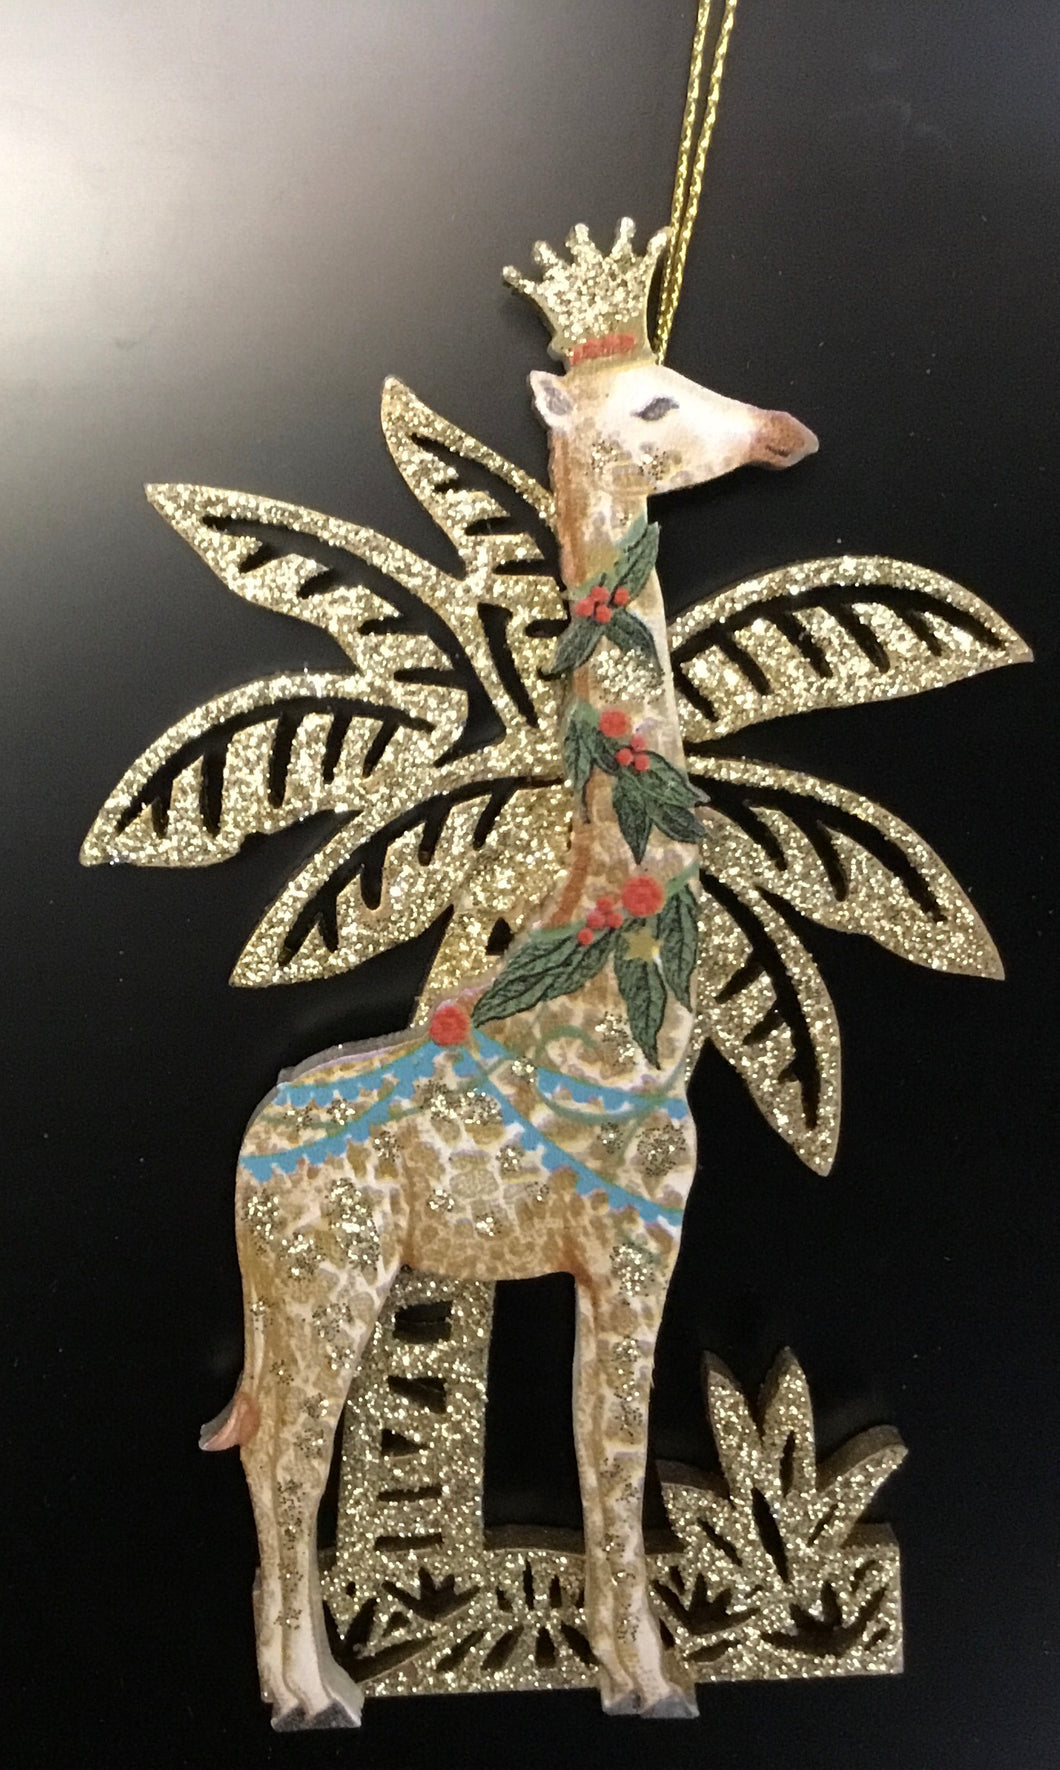 Wood giraffe with Glitter Palm Tree